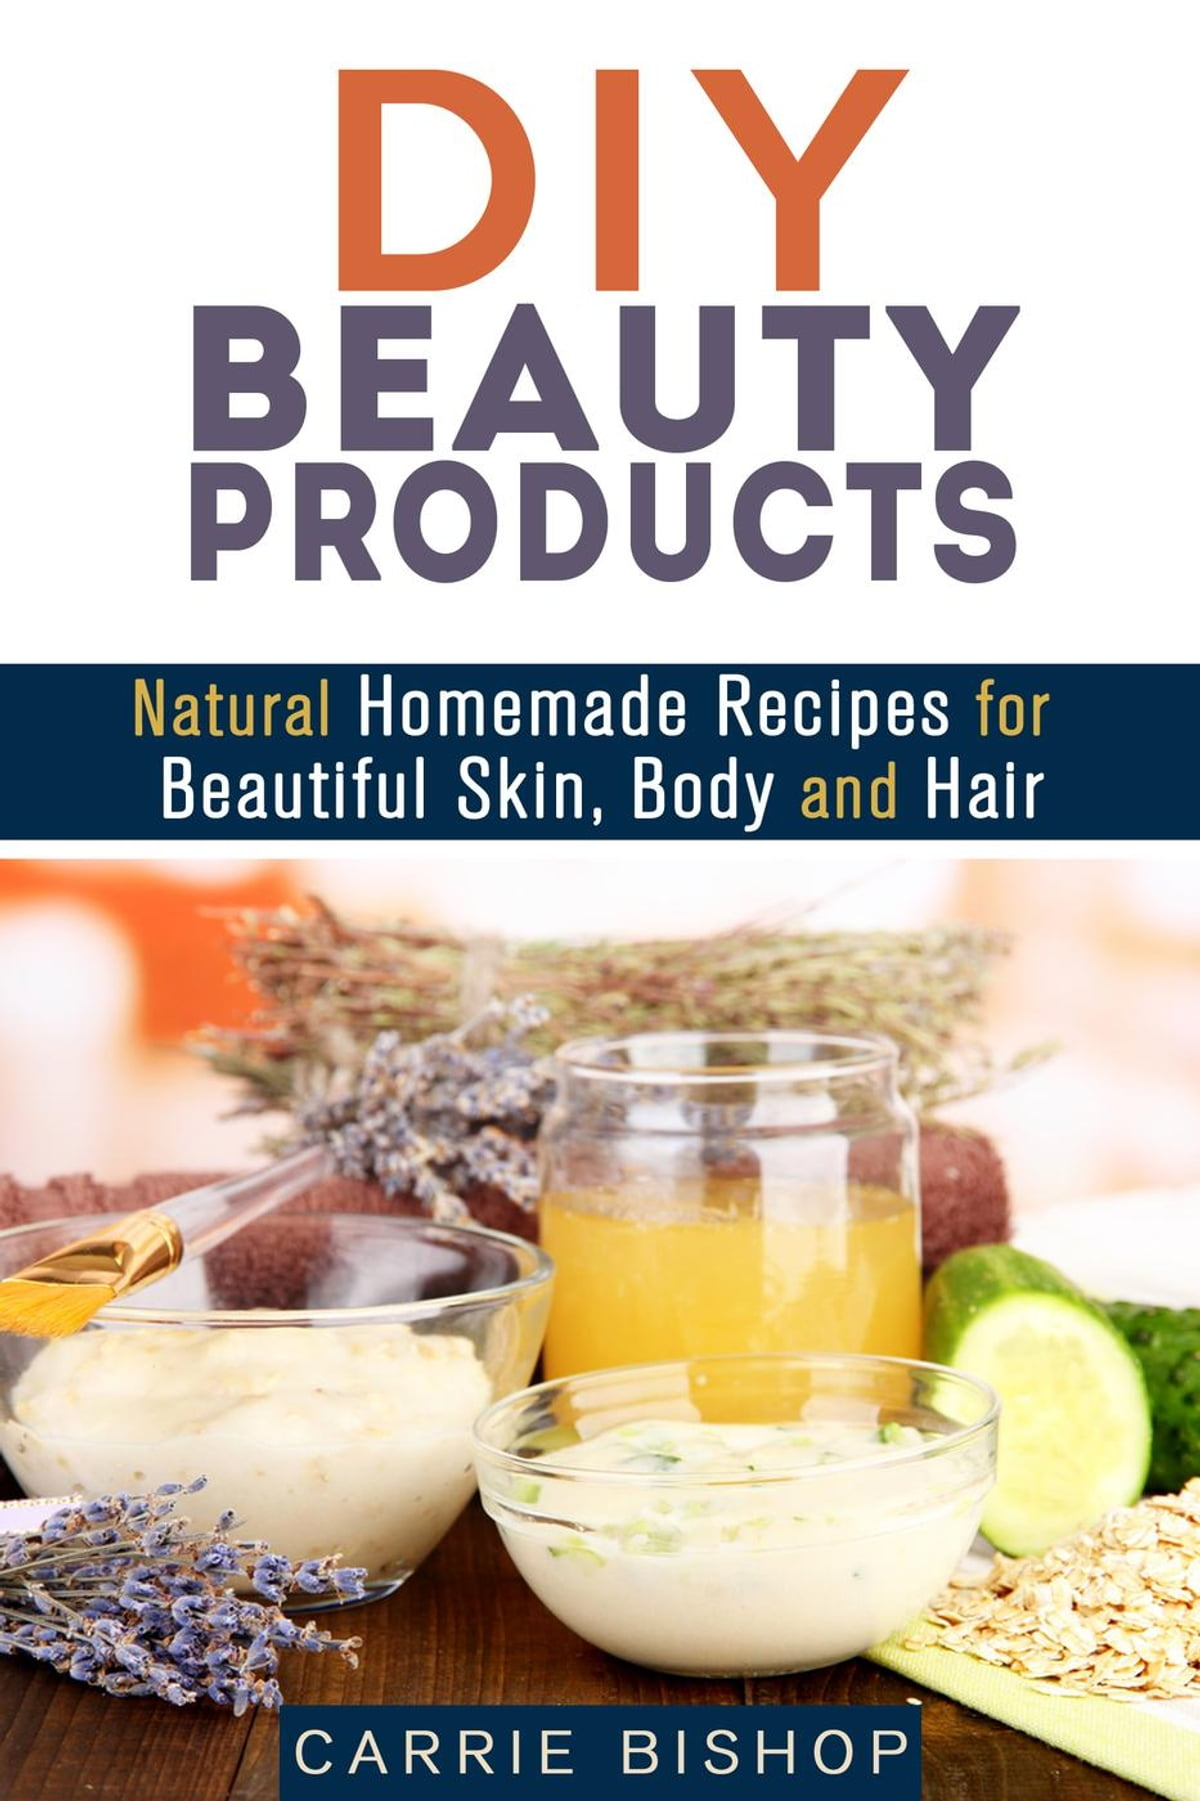 Diy Beauty Products Natural Homemade Recipes For Beautiful Skin Body And Hair Ebook By Carrie Bishop 9781386469551 Rakuten Kobo United States